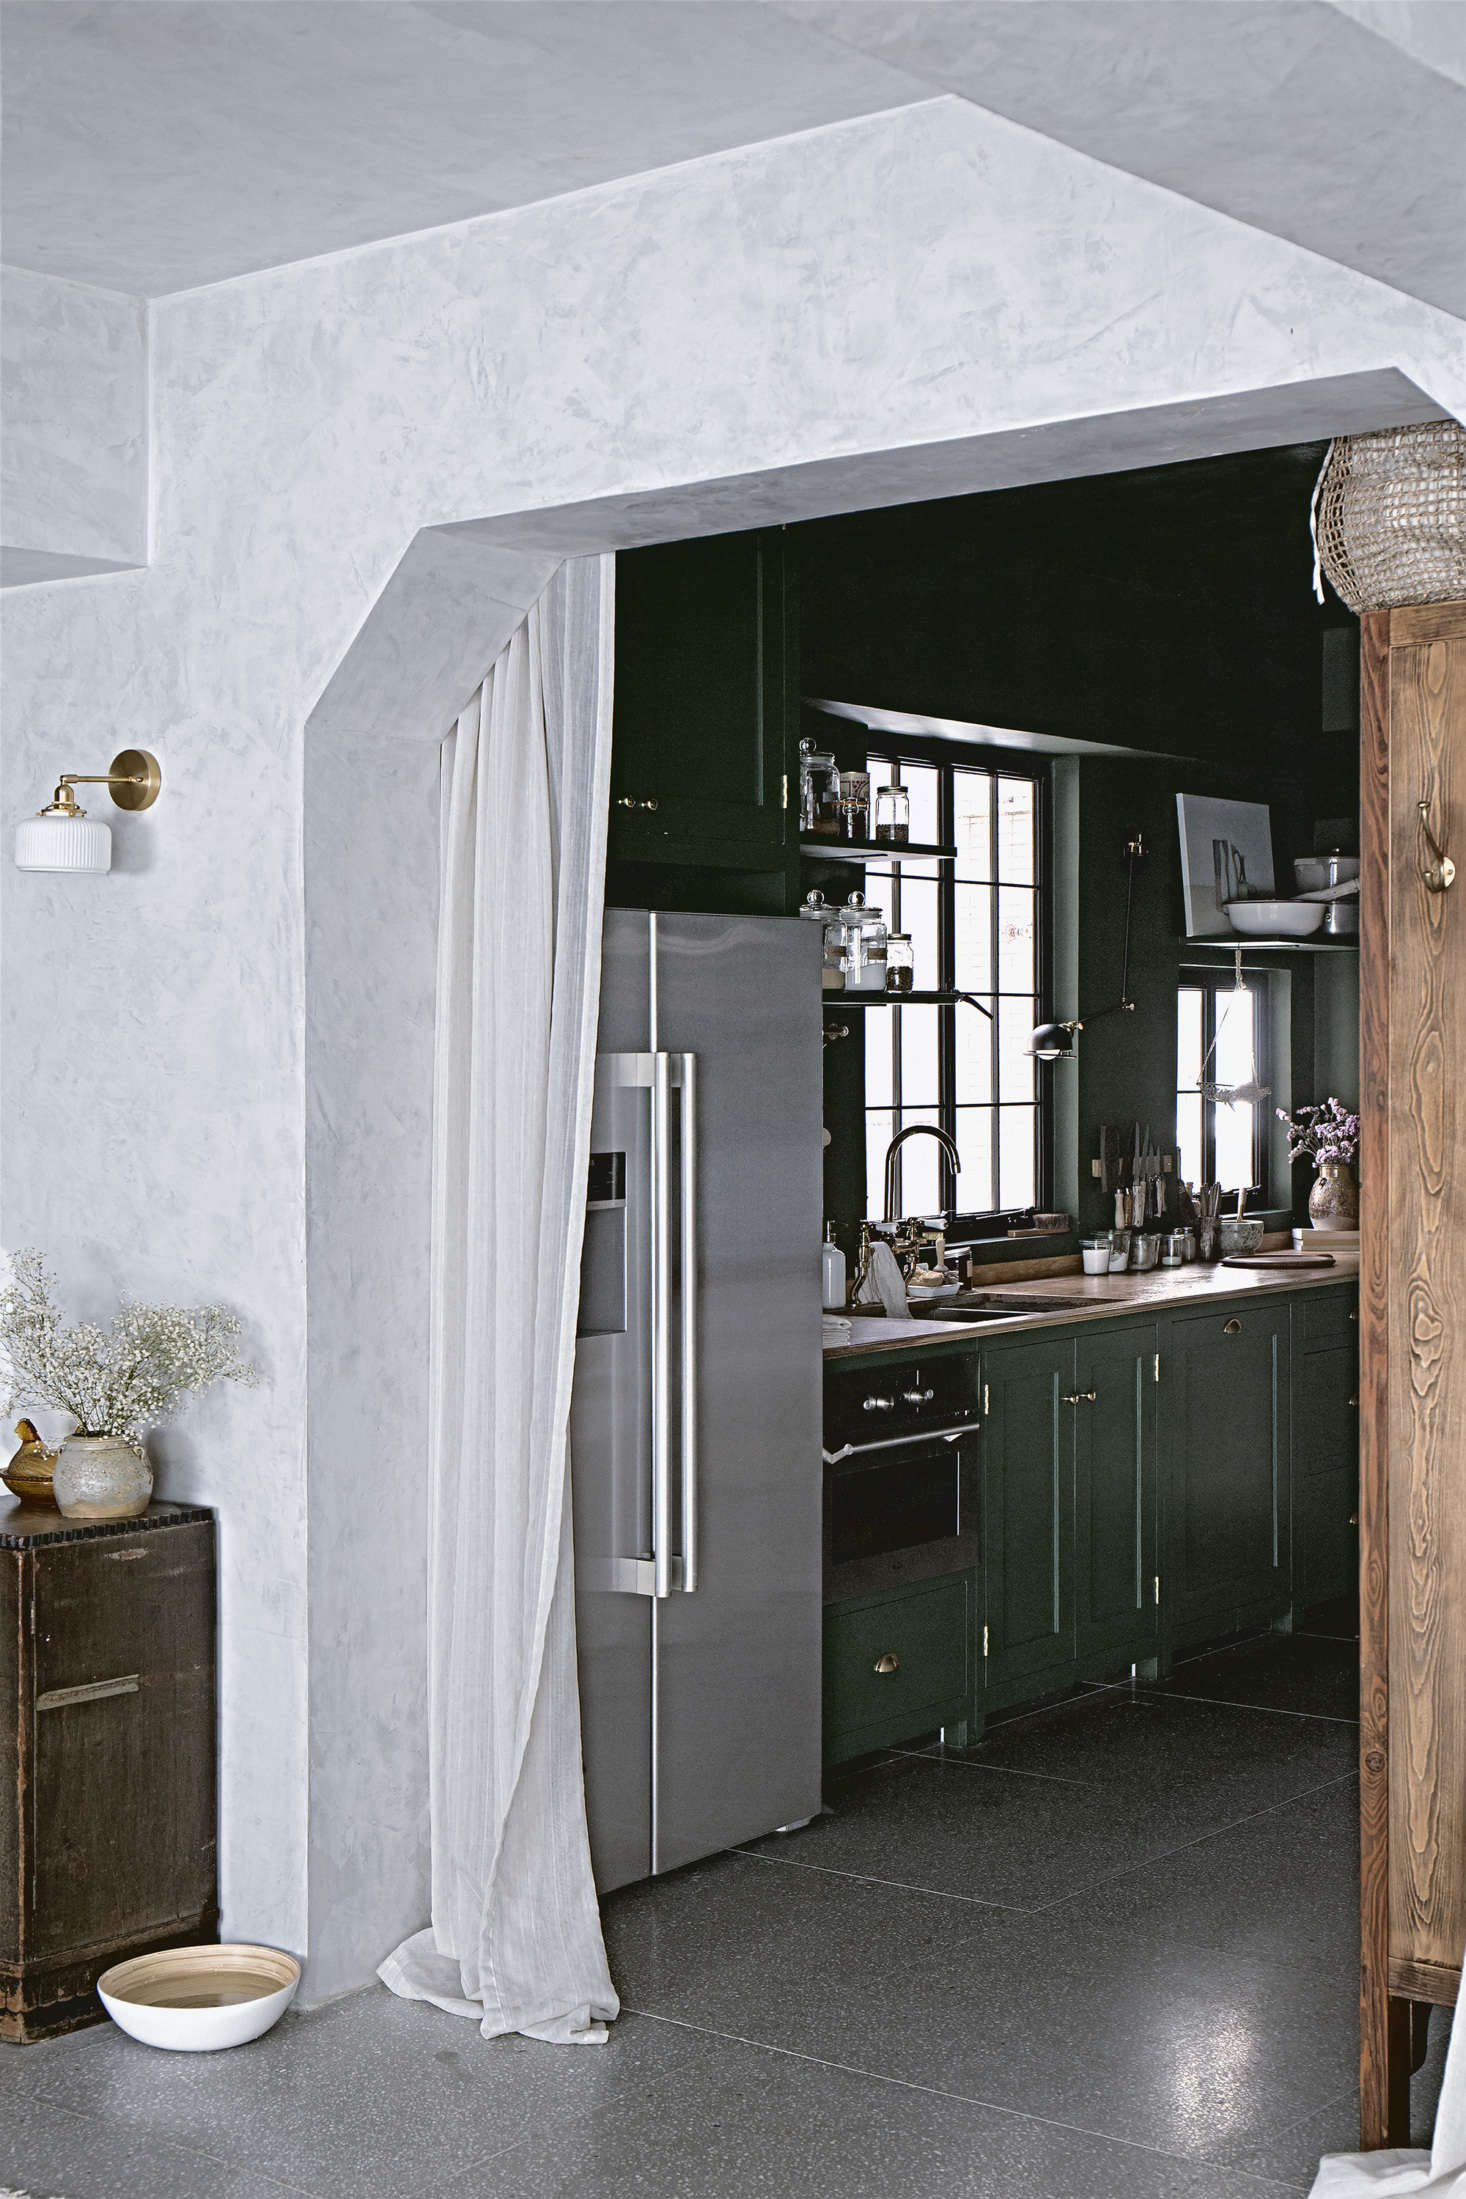 A glimpse of the moody green kitchen. Their dogs' water bowl sits on the tiled palazzo floor. See Kitchen of the Week: The &#8